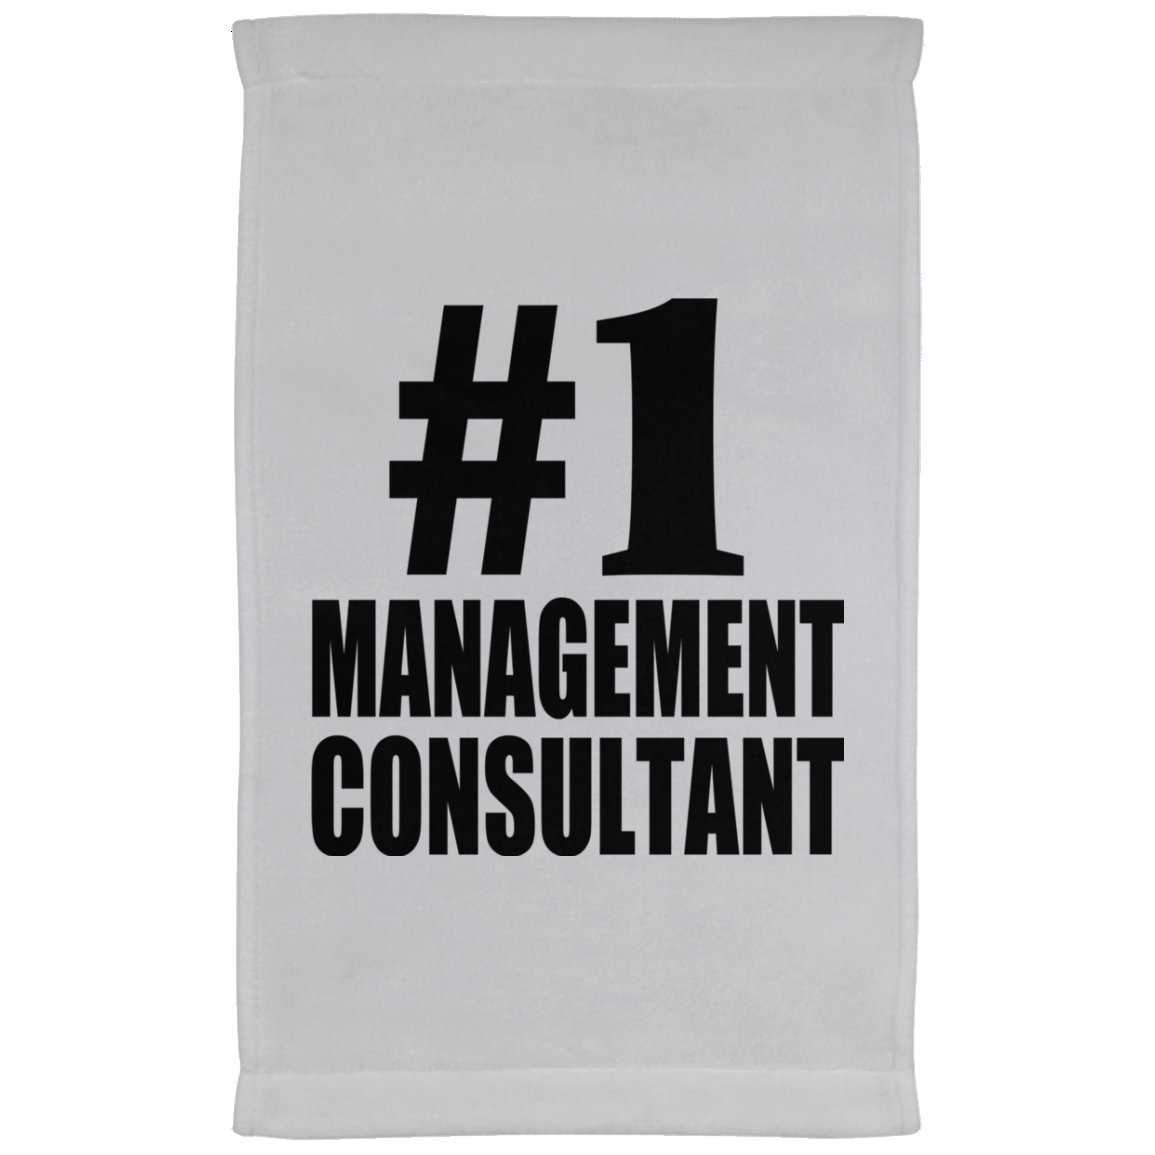 Designsify Number One #1 Management Consultant - Kitchen Towel, Microfiber Velour Towel, Best Gift for Birthday, Anniversary, Easter, Valentine's Mother's Father's Day